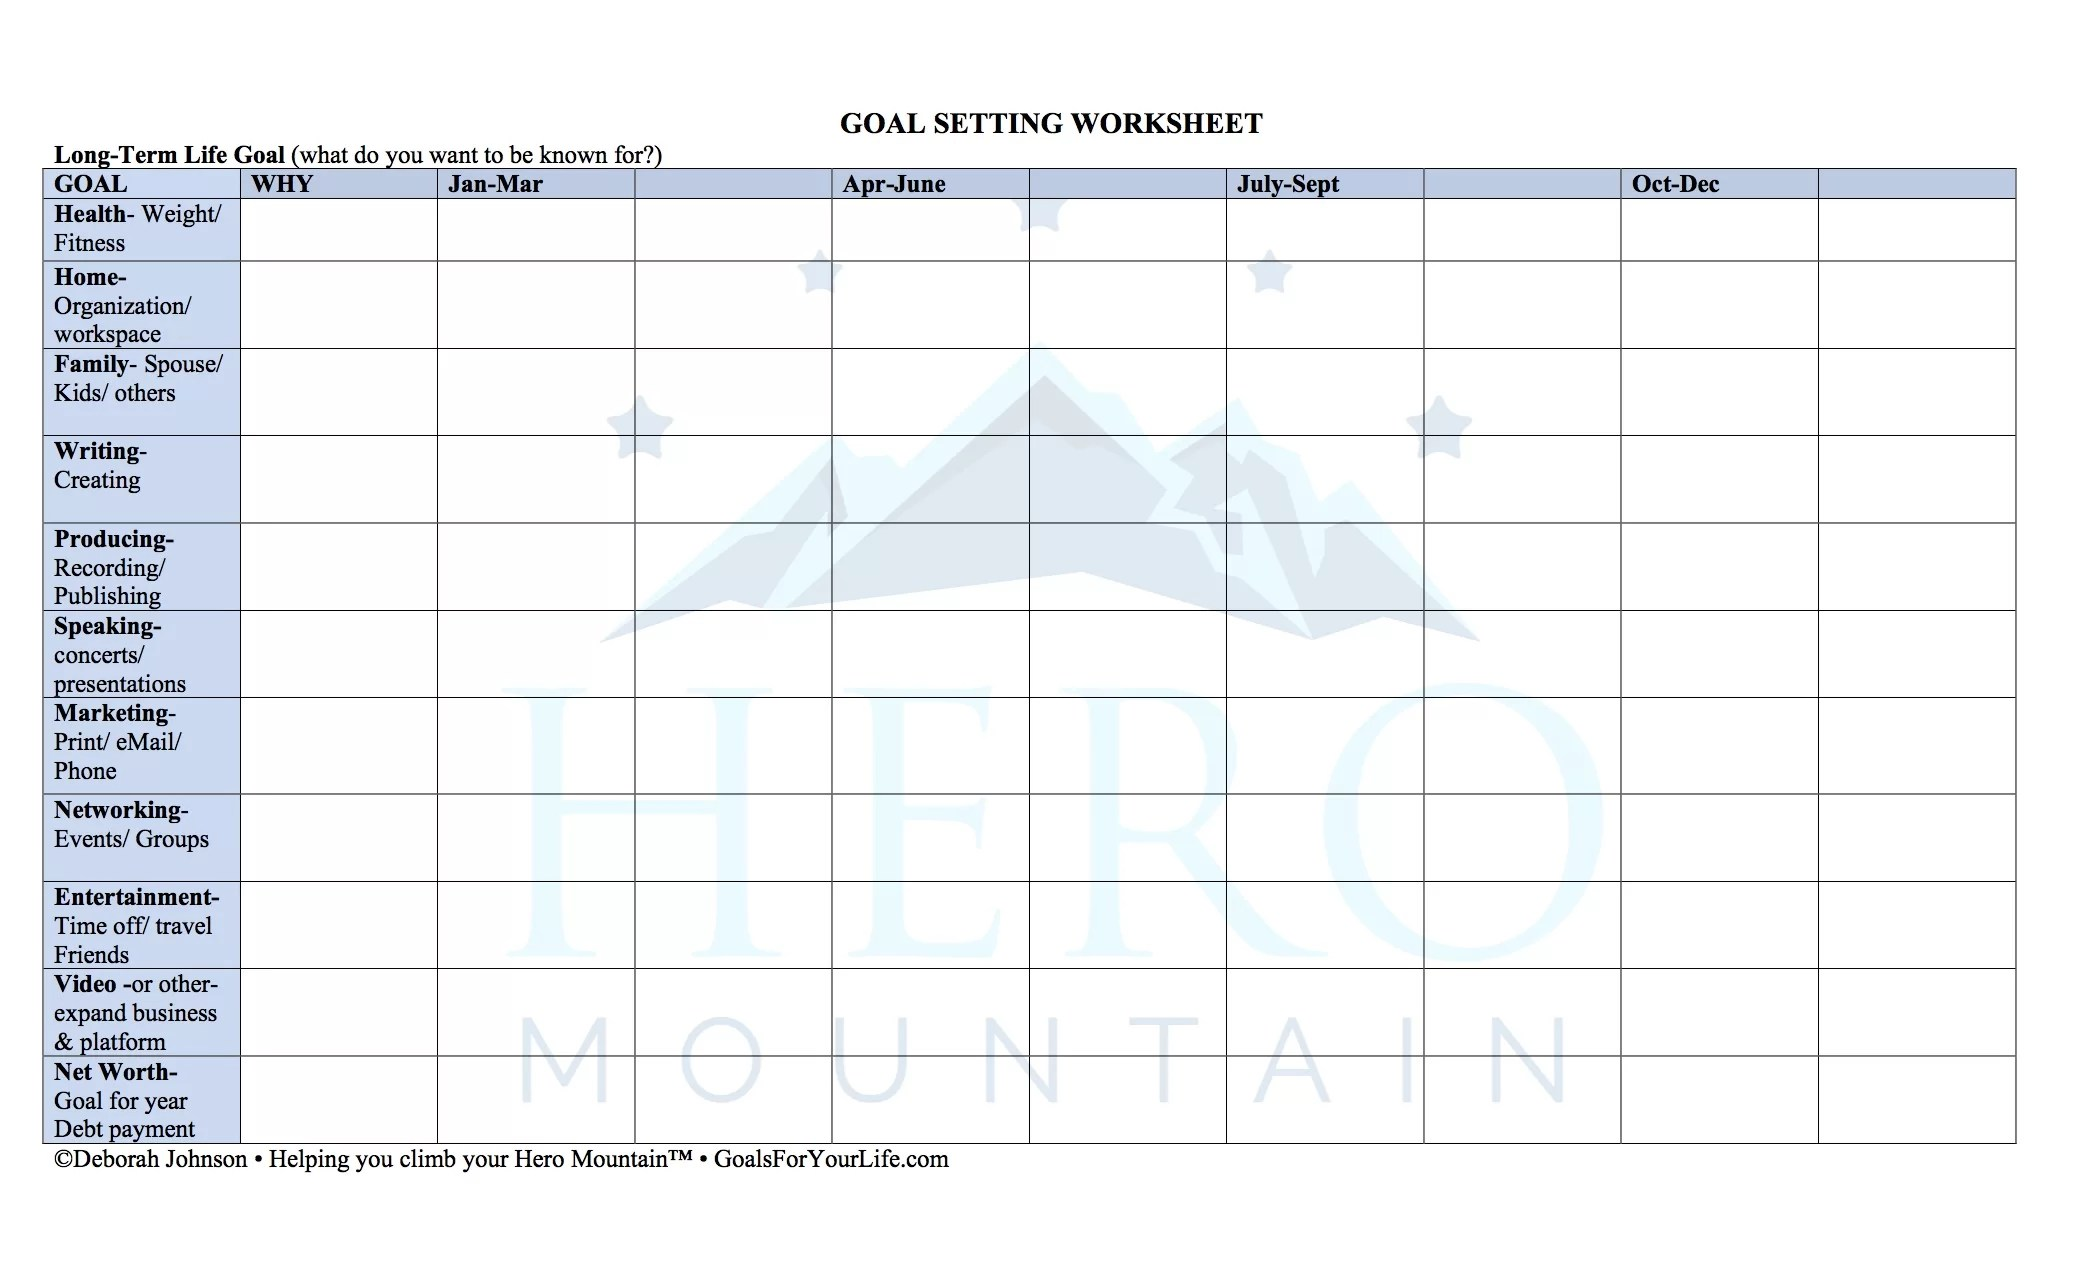 Goal Setting Worksheet Goals For Your Life Deborah Johnson